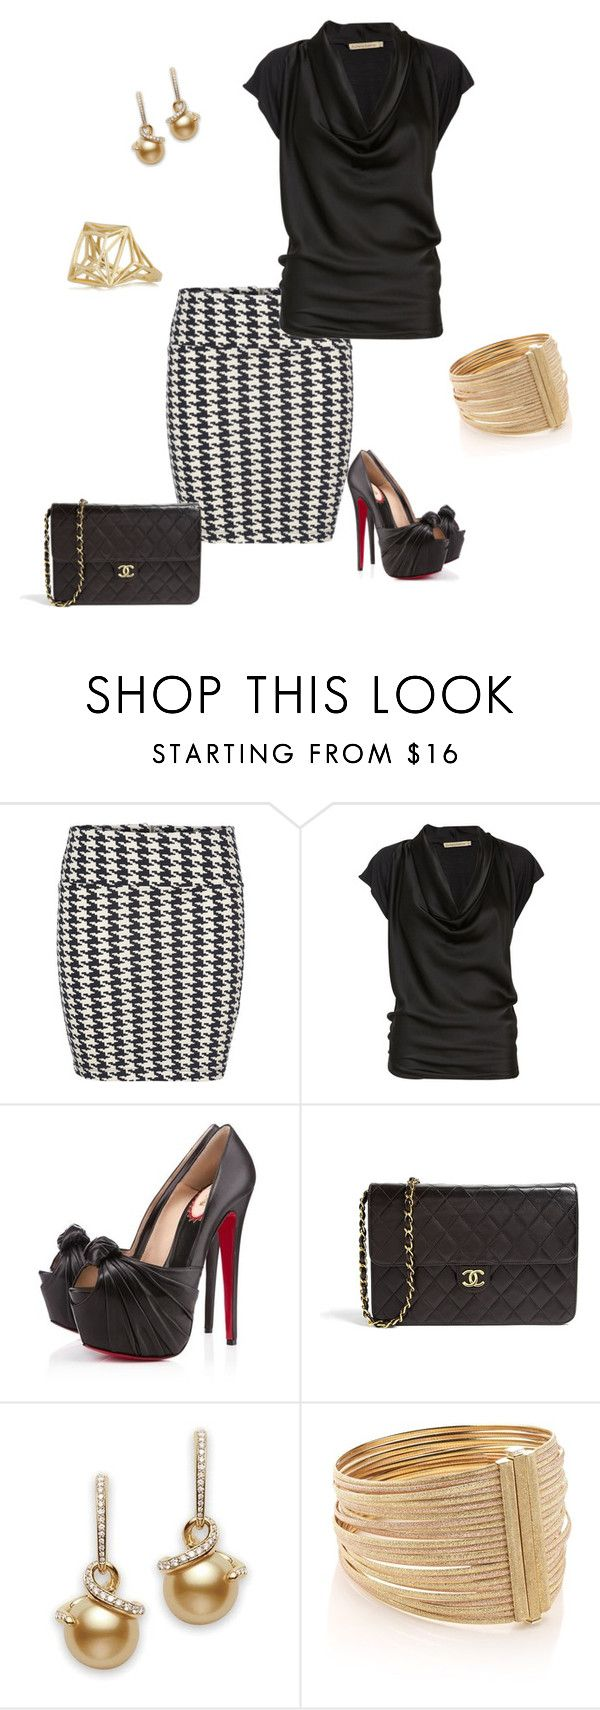 """Untitled #172"" by julia0331 ❤ liked on Polyvore featuring ONLY, Rabens Saloner, Christian Louboutin, Chanel, Carolina Bucci and Solange Azagury-Partridge"